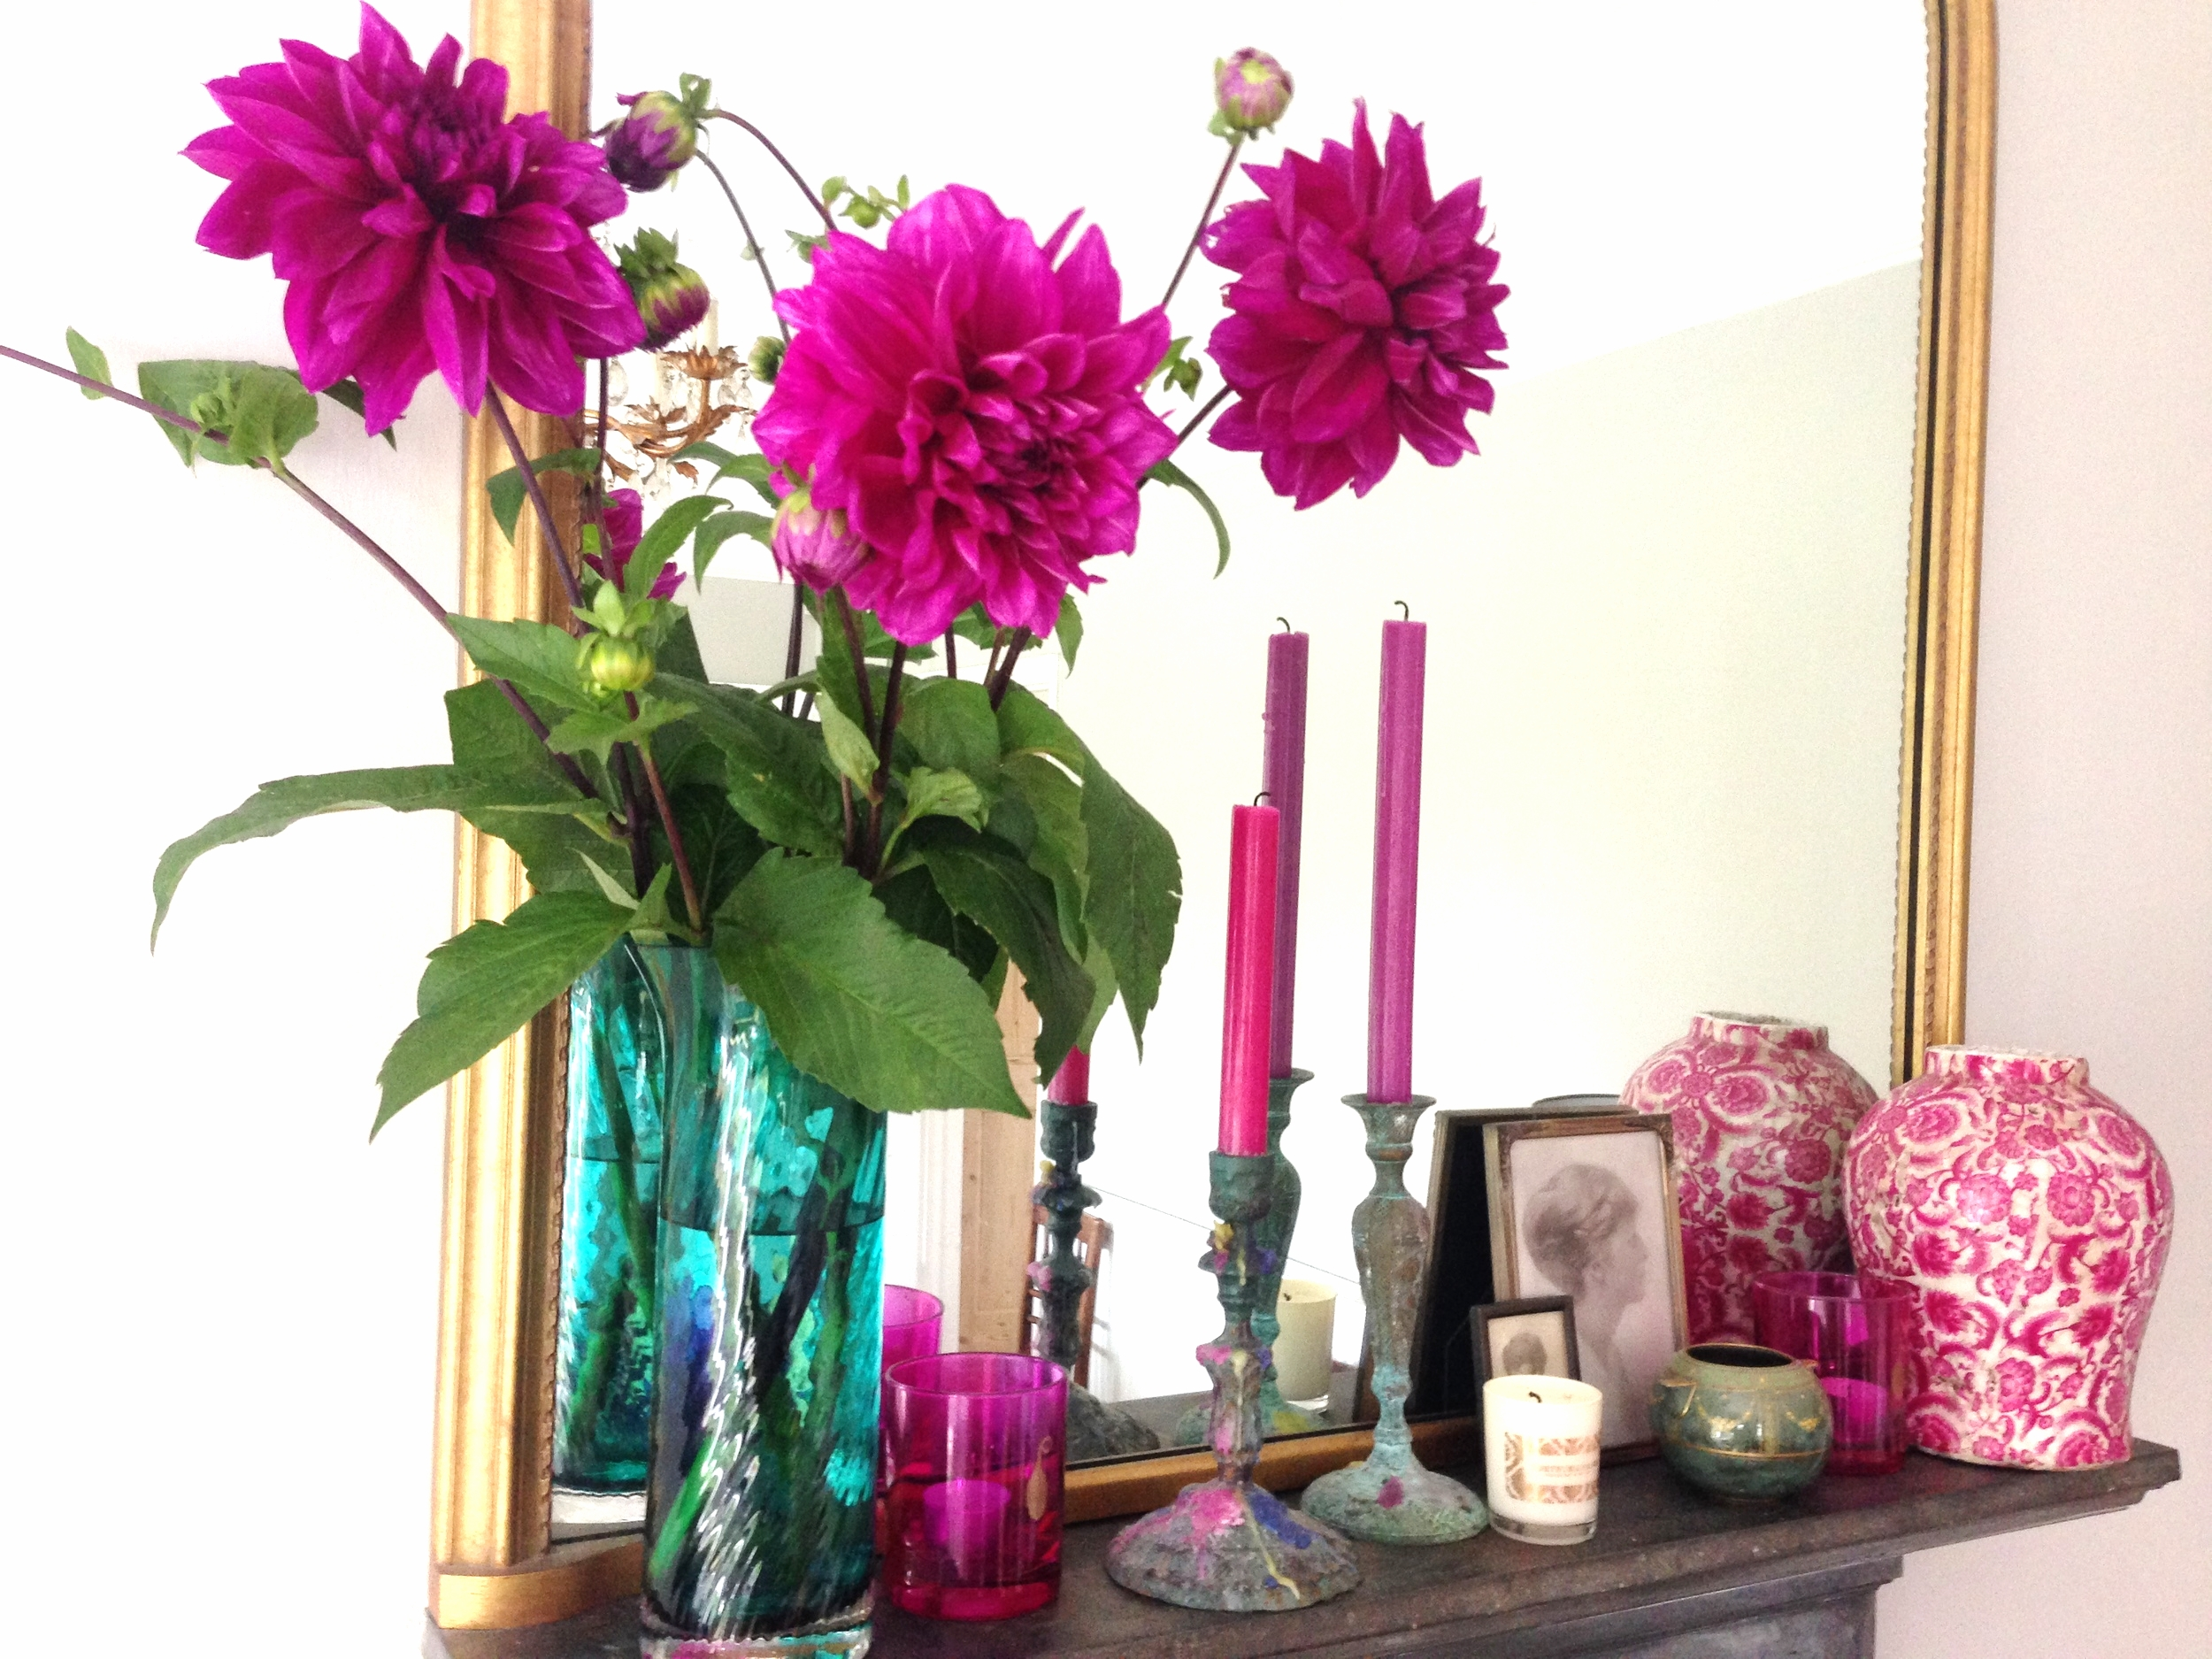 The dahlias in situ on my mantlepiece. Aren't they divine?